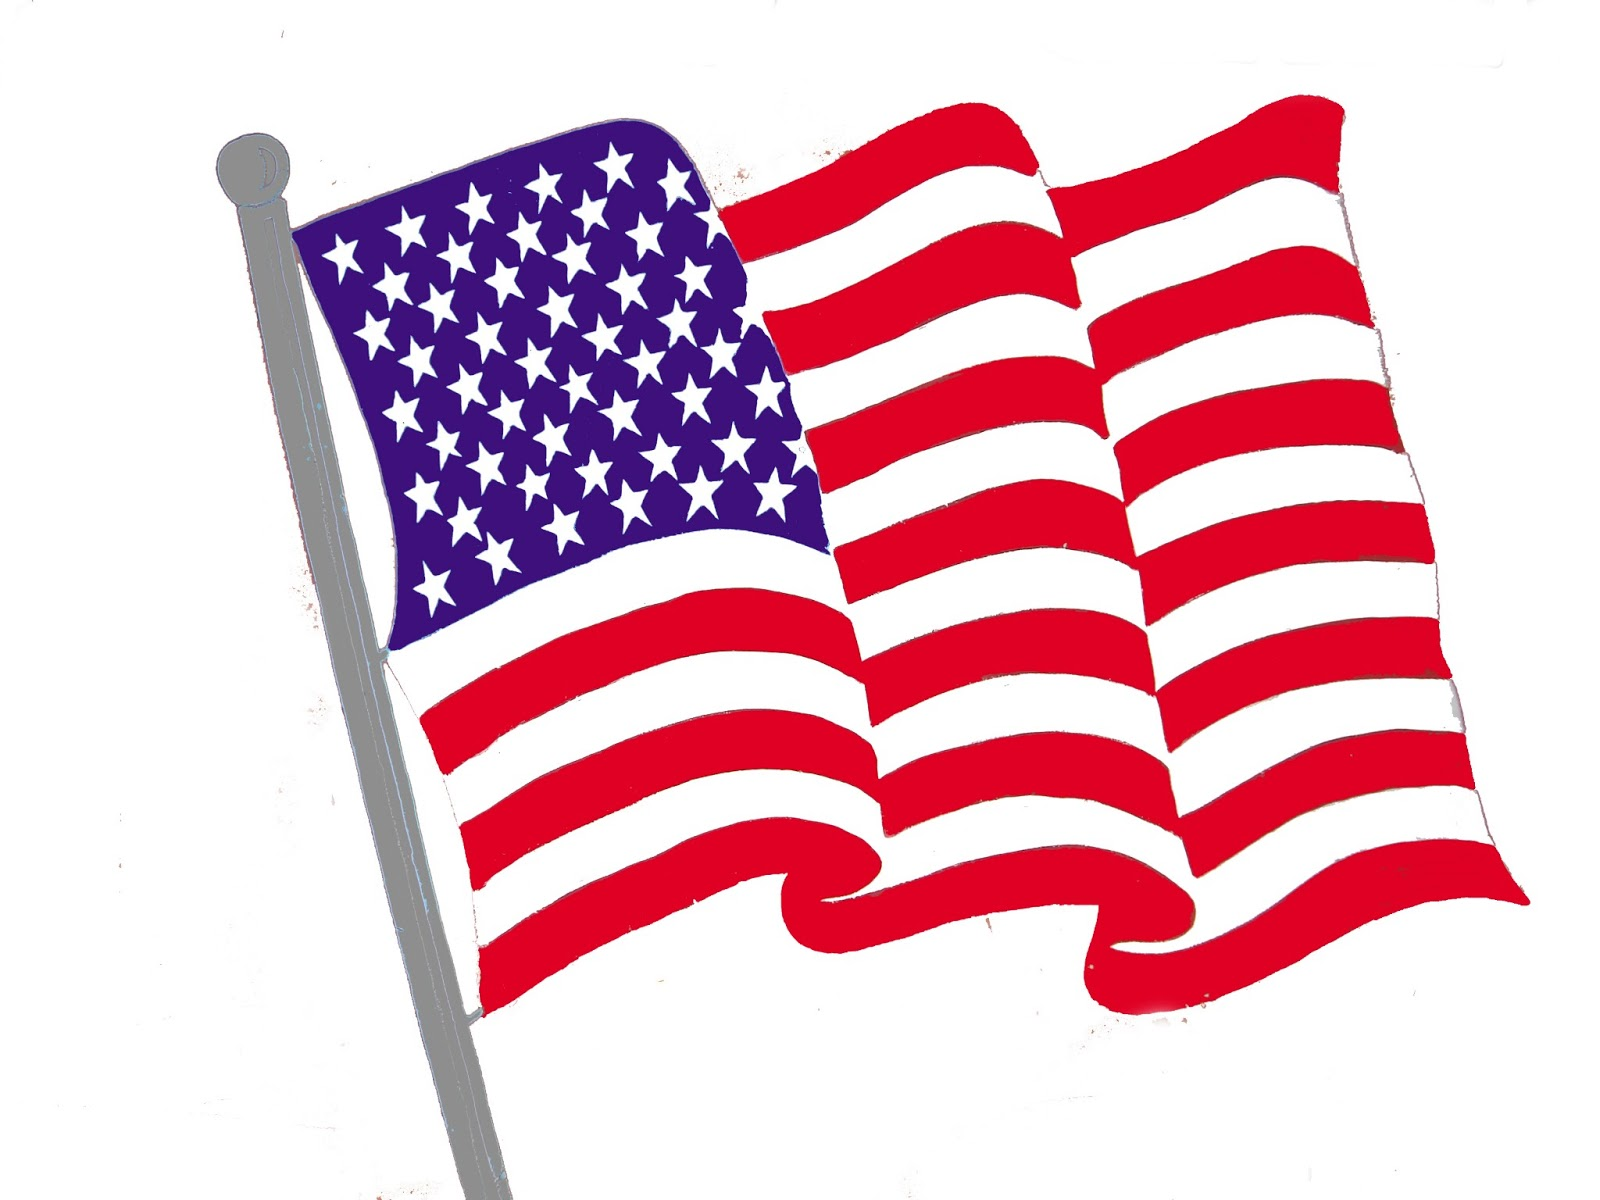 American Flag clipart #15, Download drawings